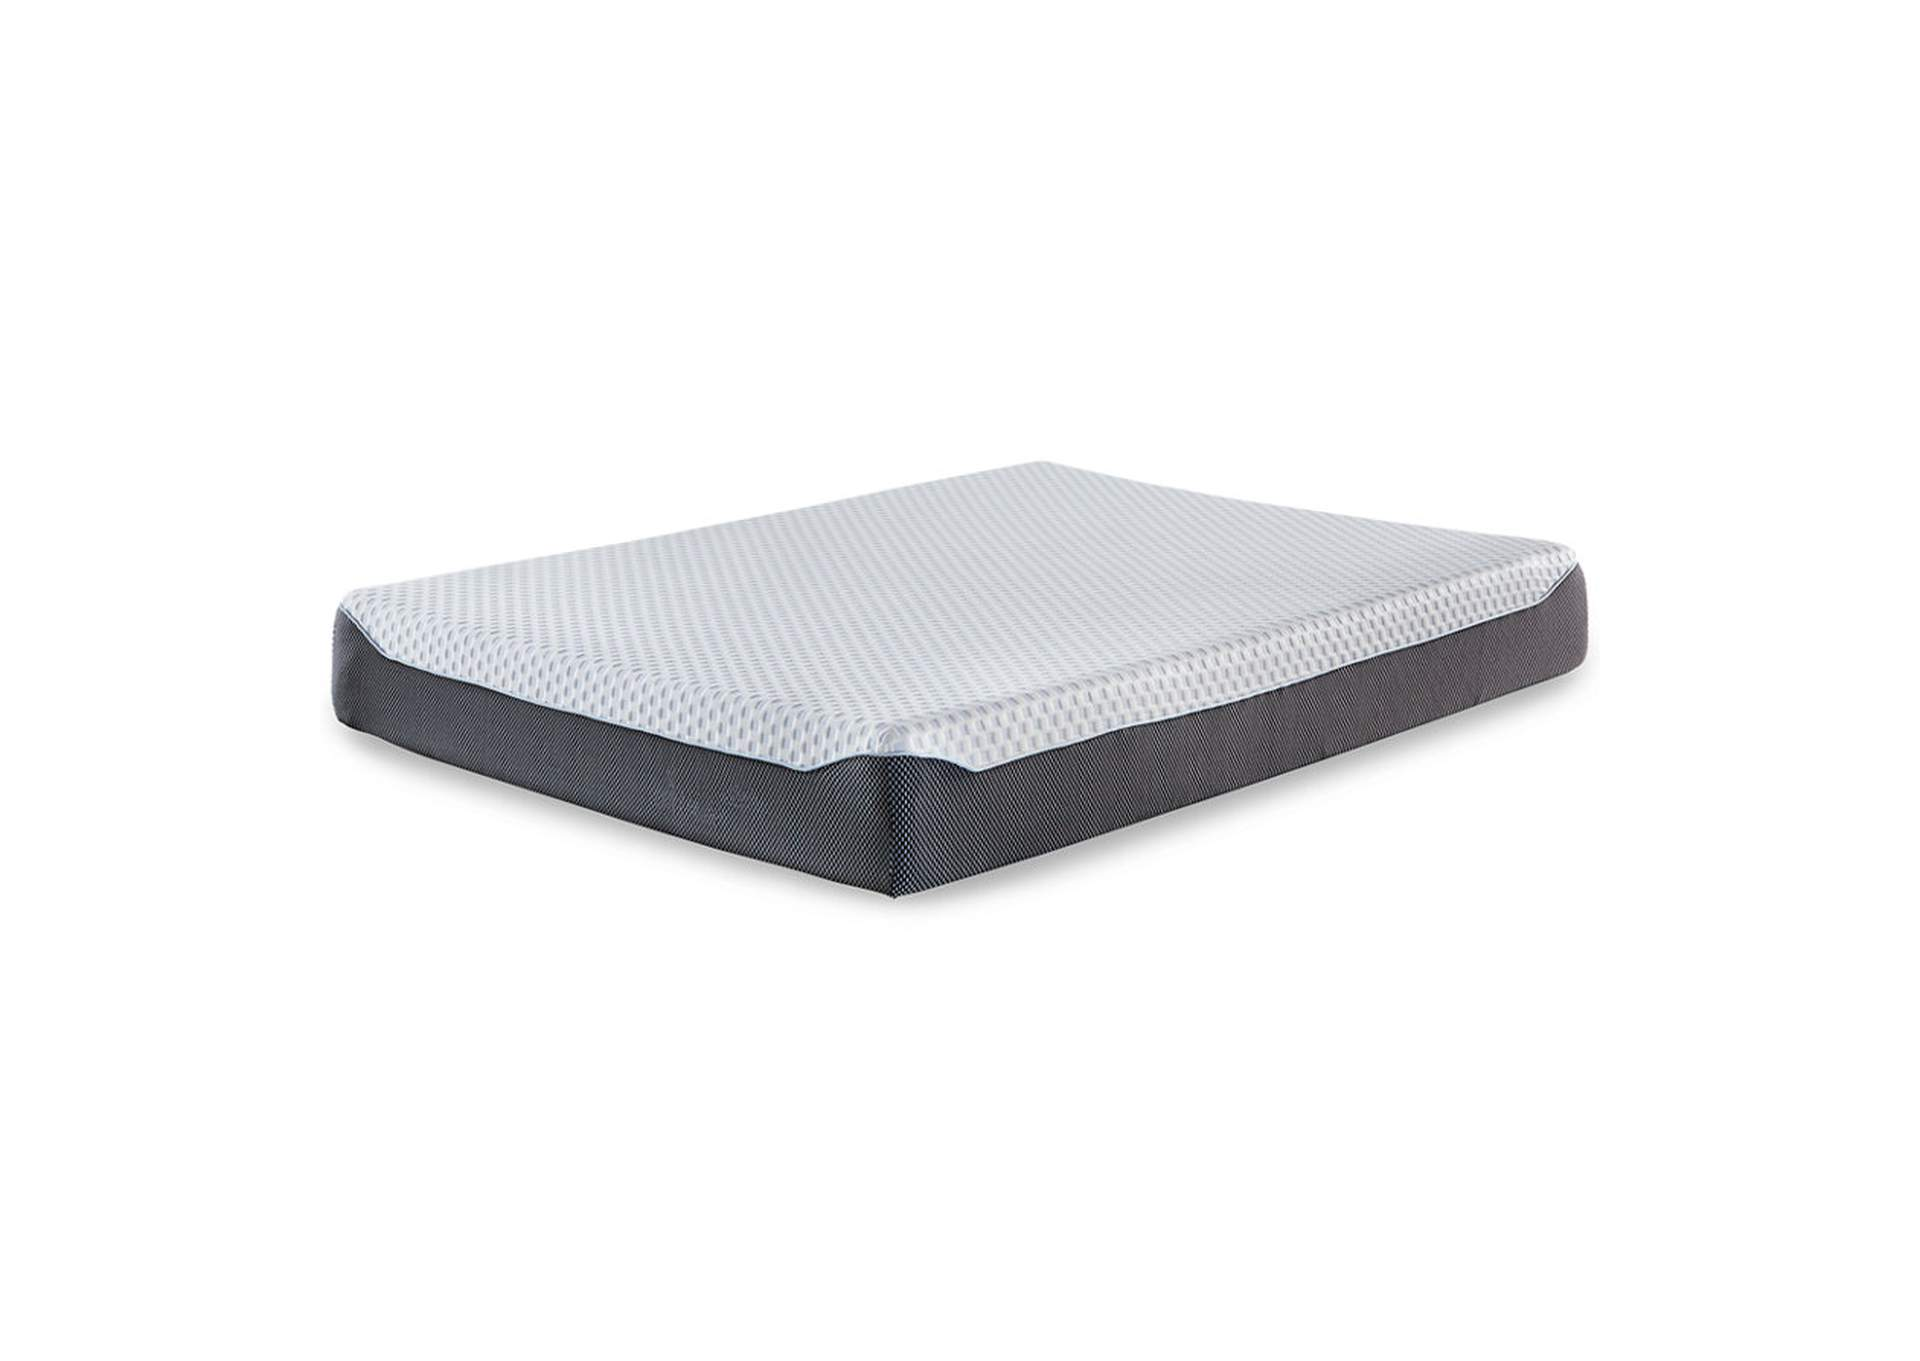 10 Inch Chime Elite Twin Memory Foam Mattress in a box,Sierra Sleep by Ashley